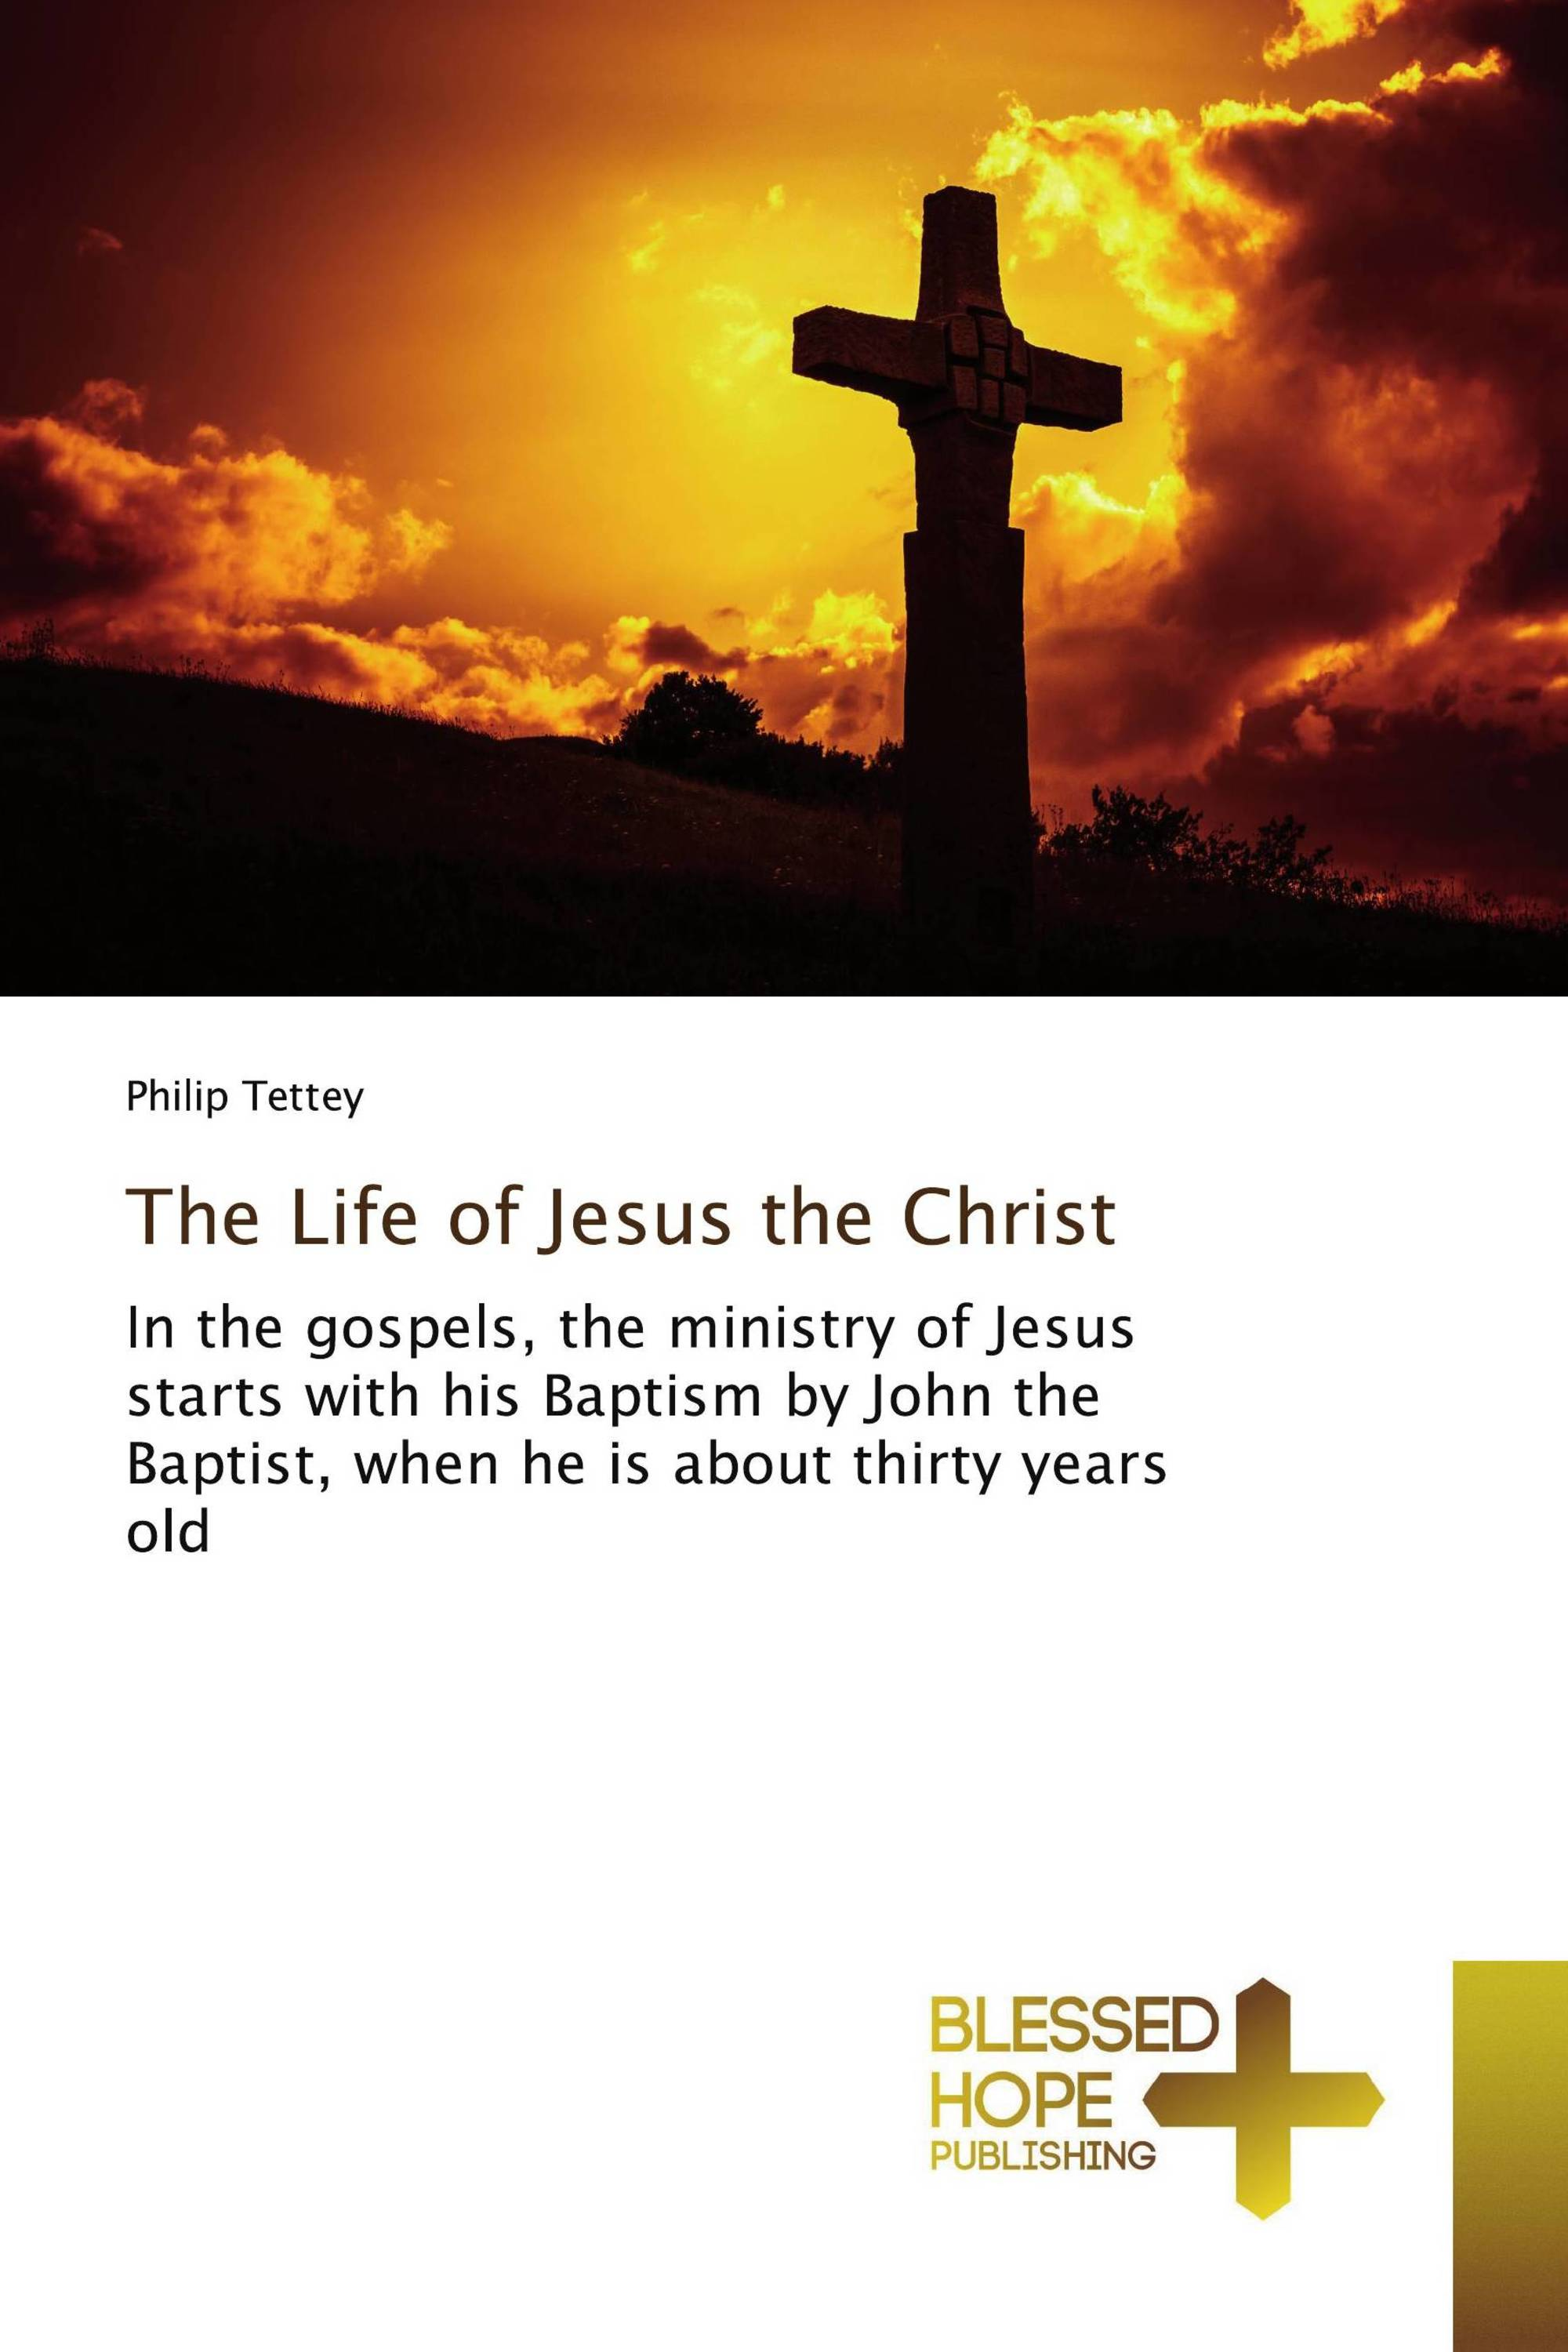 The Life of Jesus the Christ